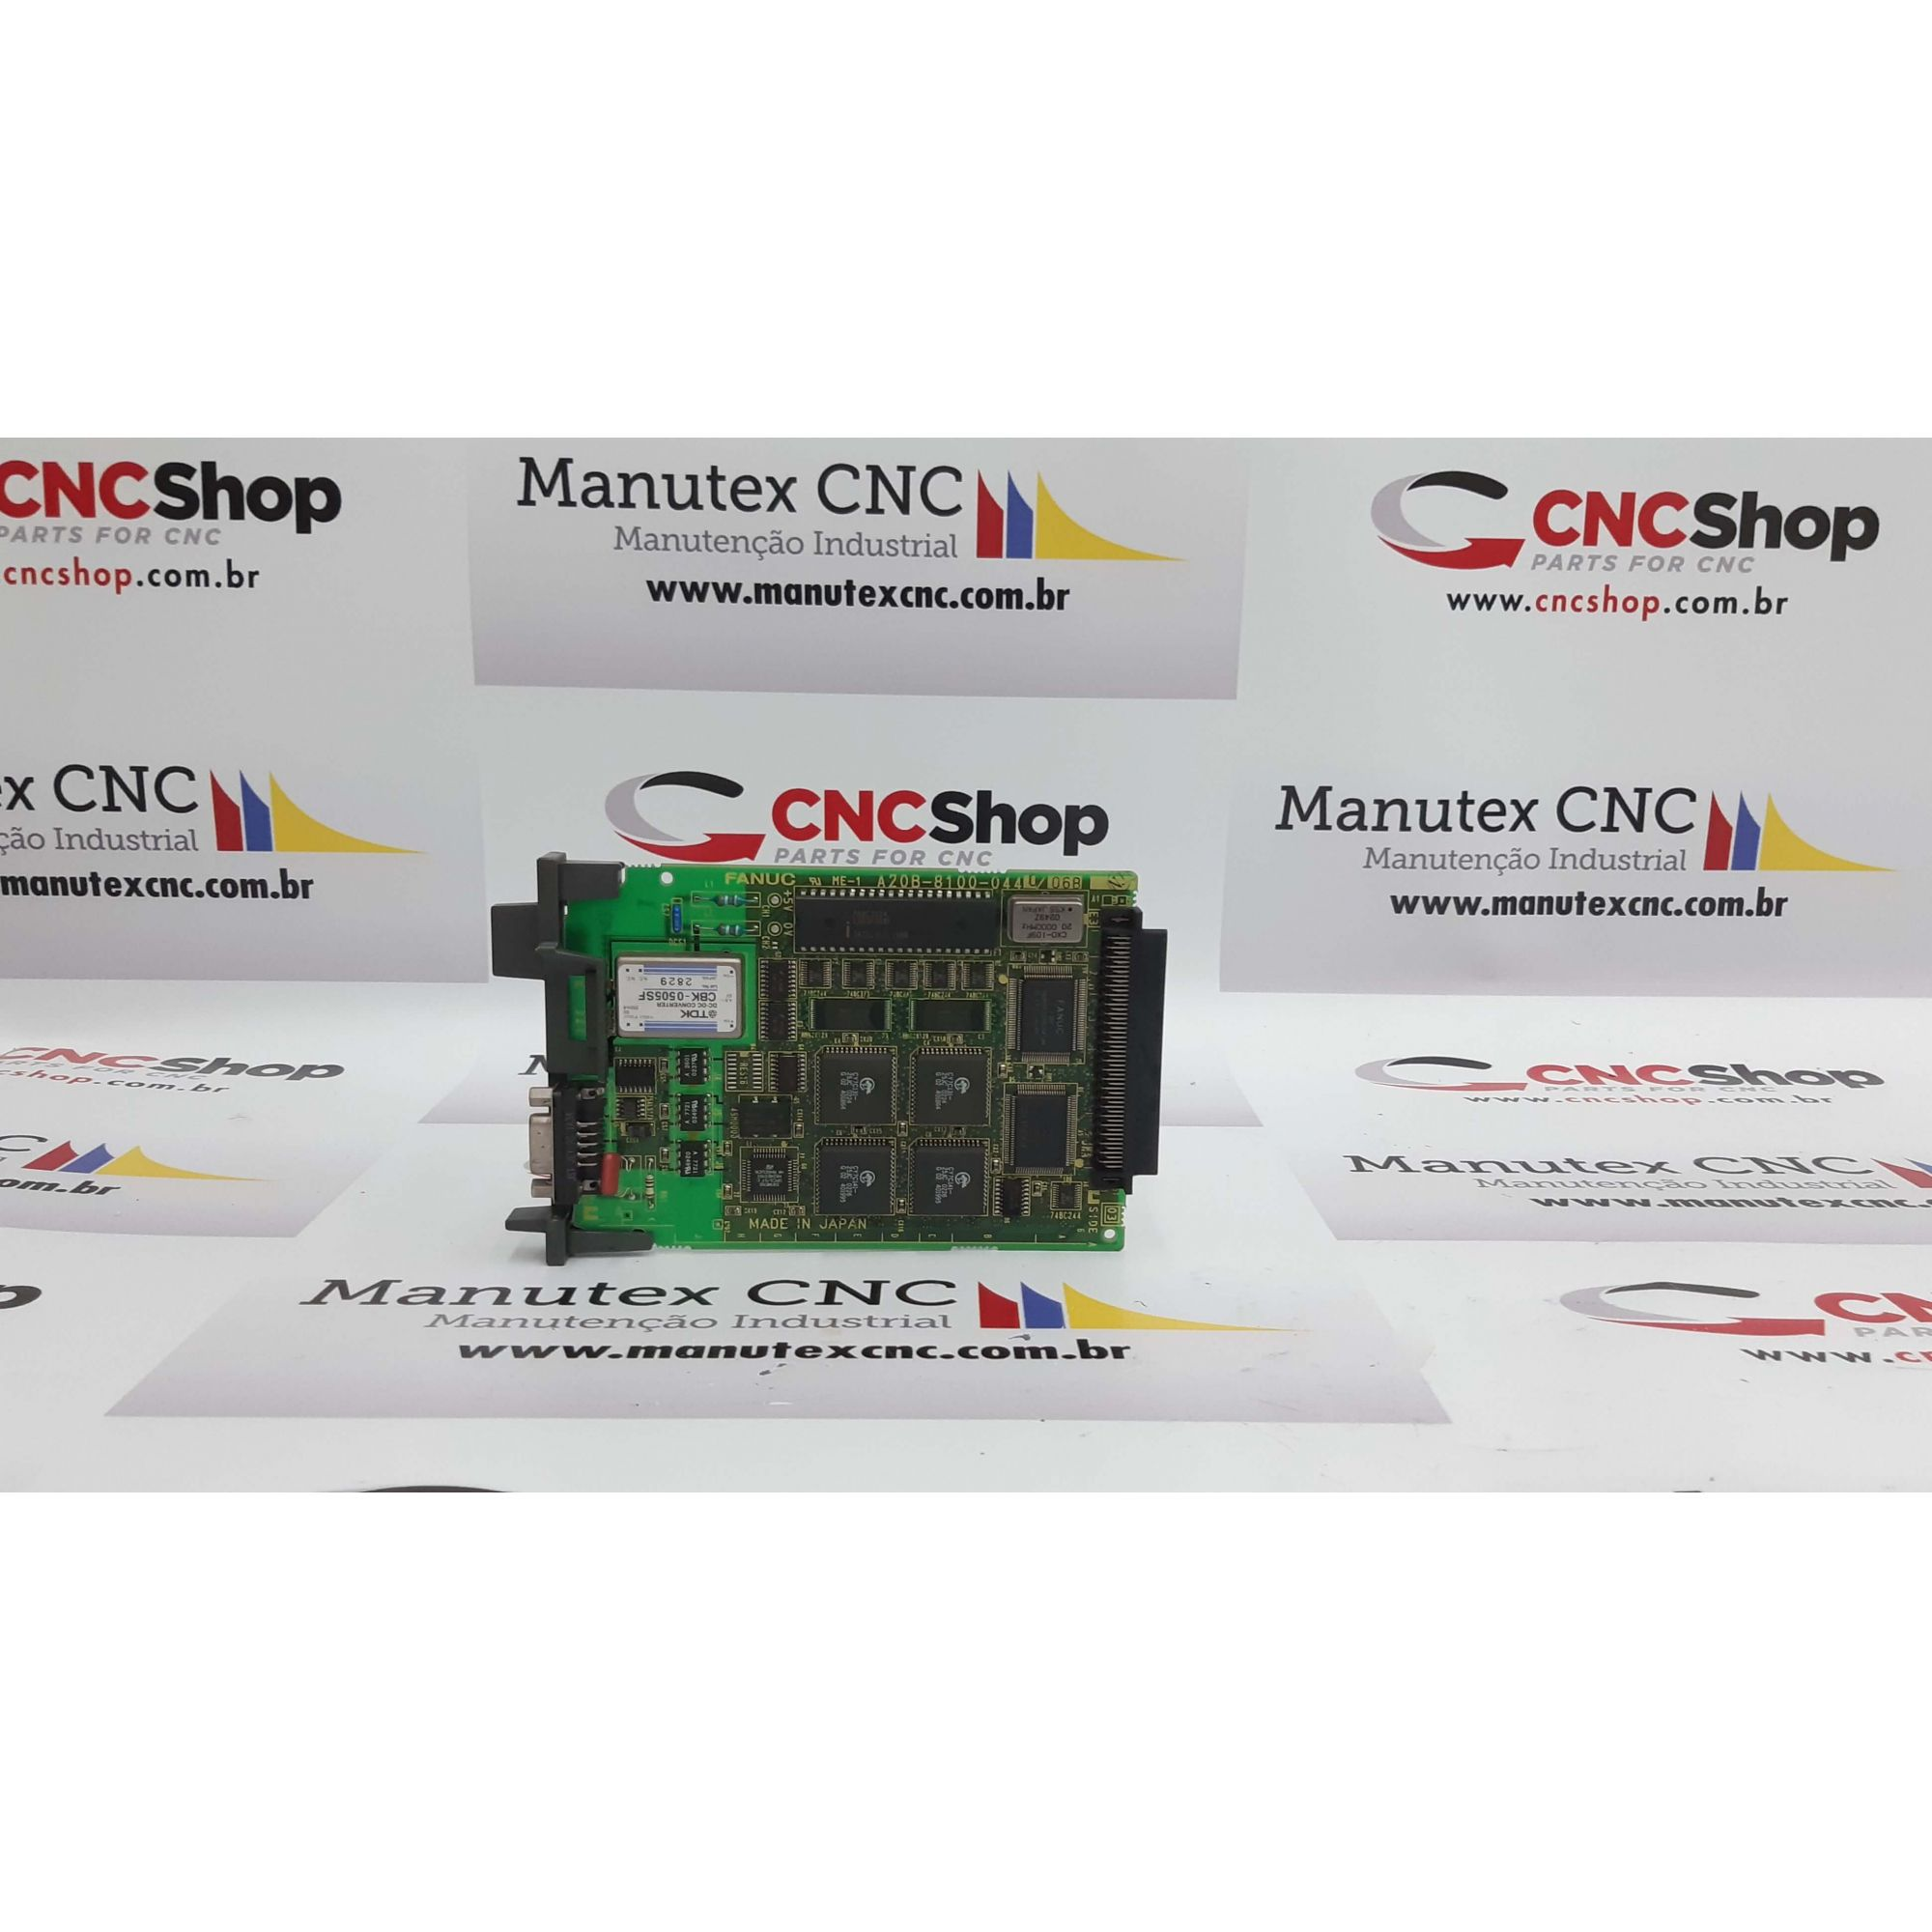 A20B-8001-0440 | PLACA INTERFACE CNC | FANUC